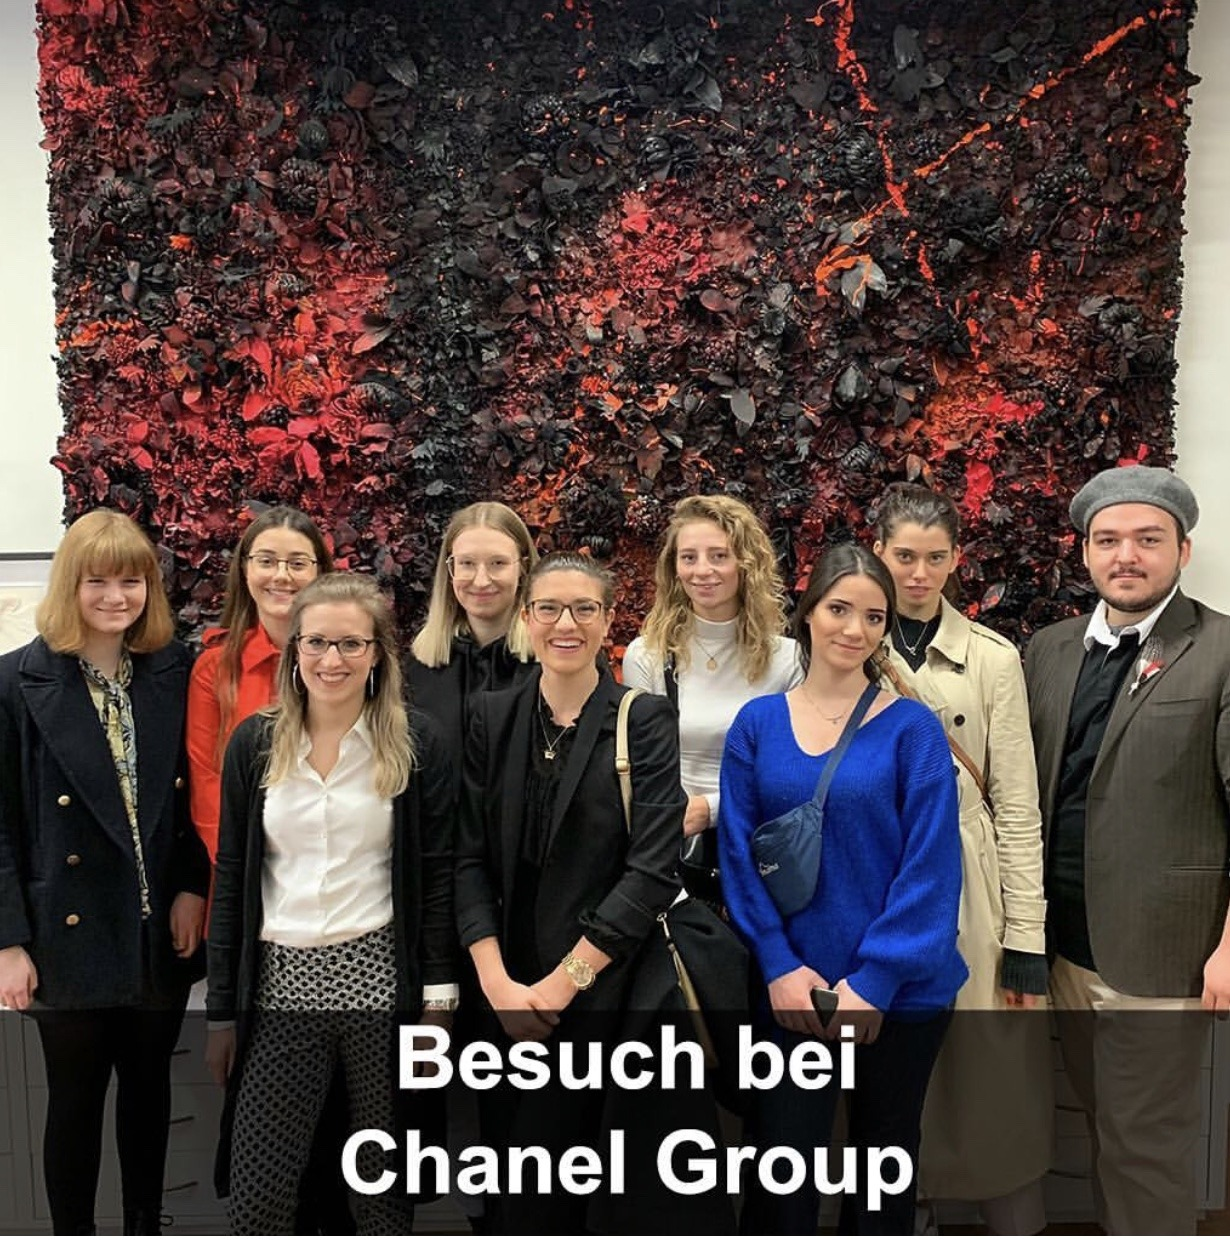 Chanel Group